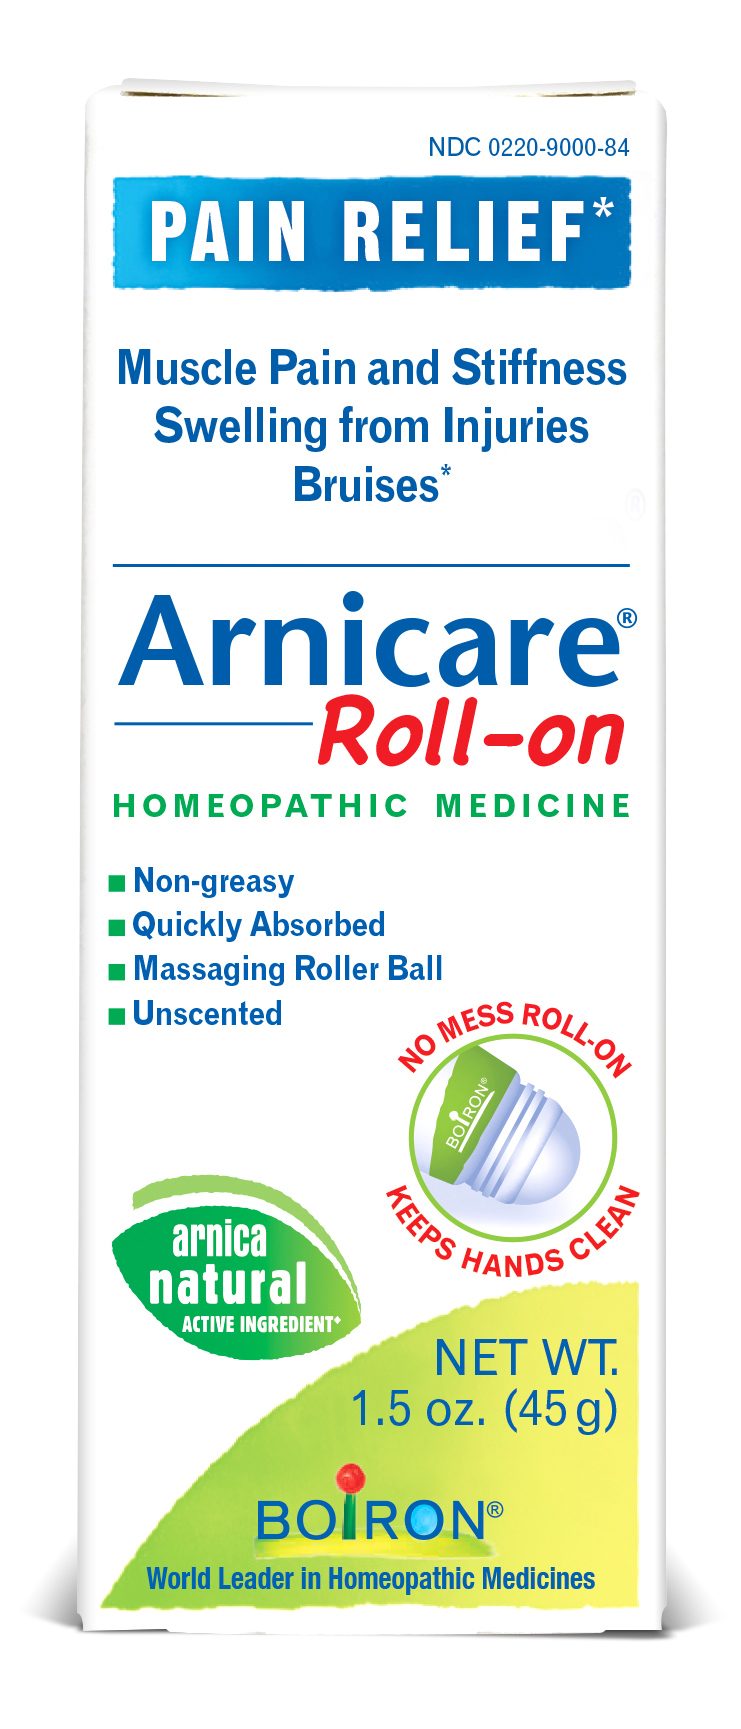 Pain Relief Roll-on Homeopathic Medicine   The Natural